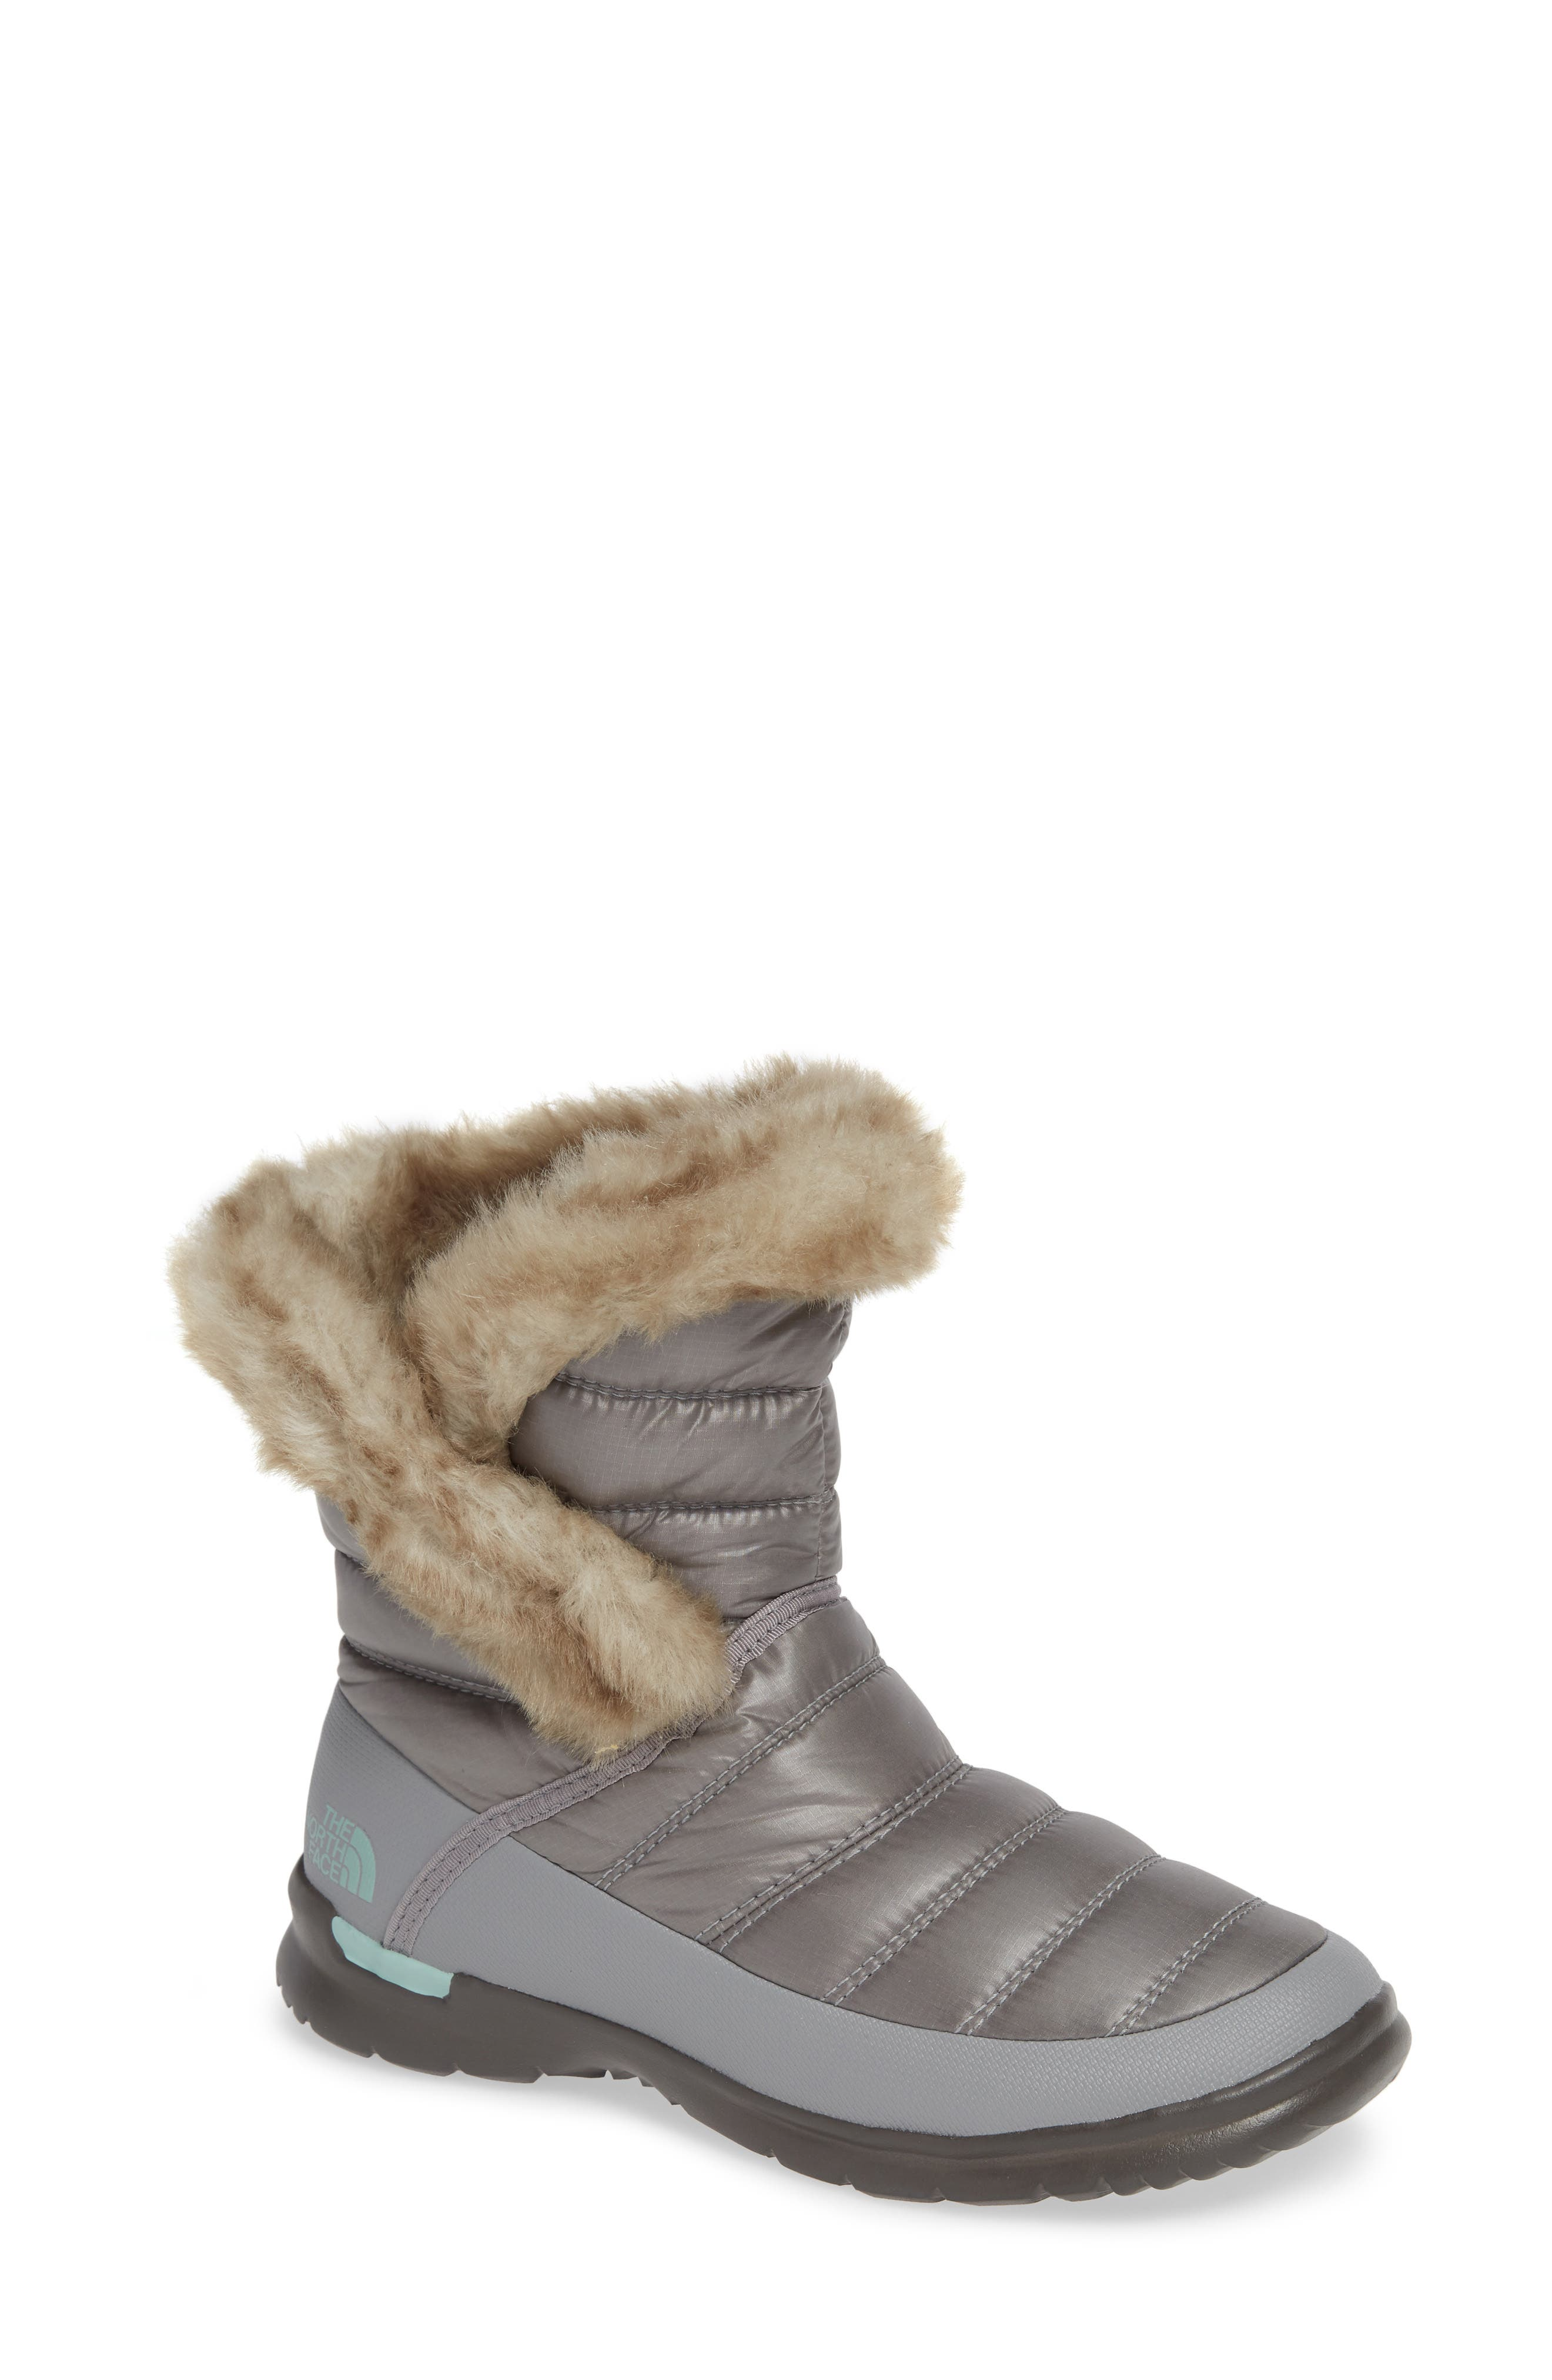 Microbaffle Waterproof ThermoBall<sup>®</sup> Insulated Winter Boot,                             Main thumbnail 1, color,                             SHINY FROST GREY/ BLUE HAZE